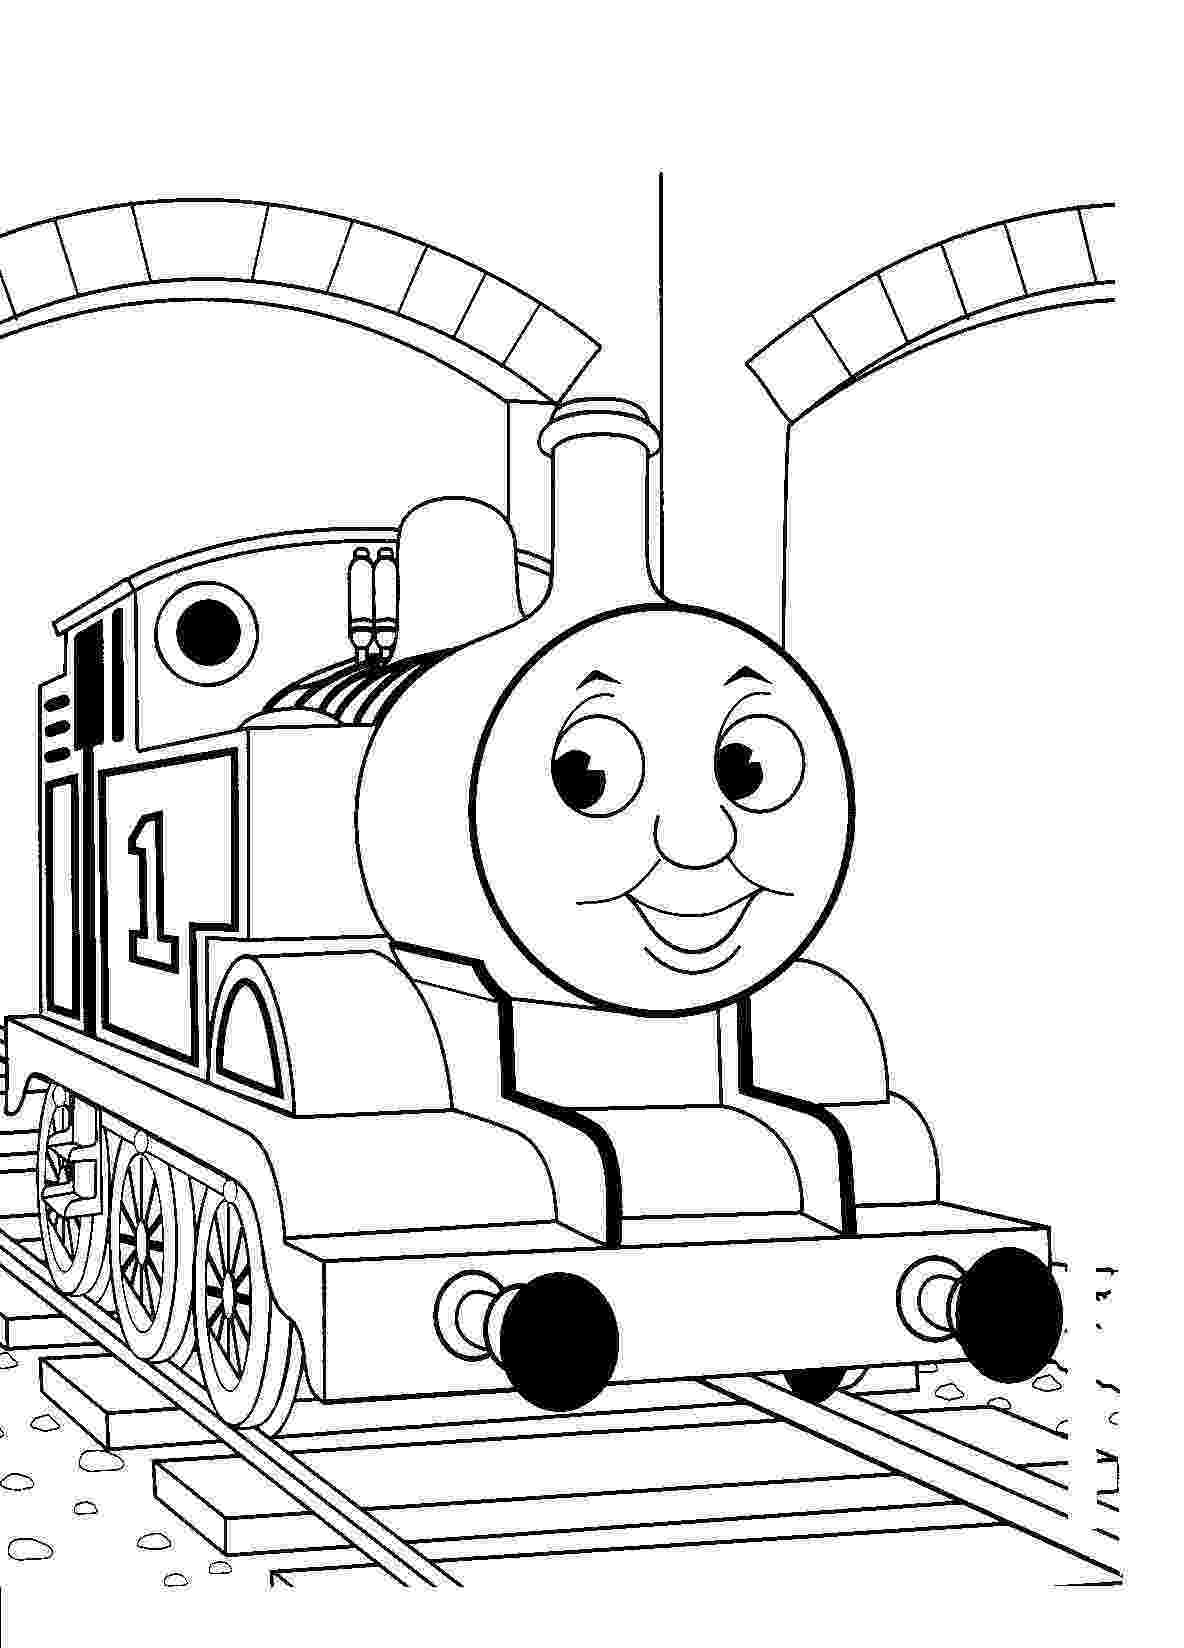 coloring online thomas thomas friends coloring pages educational fun kids online thomas coloring